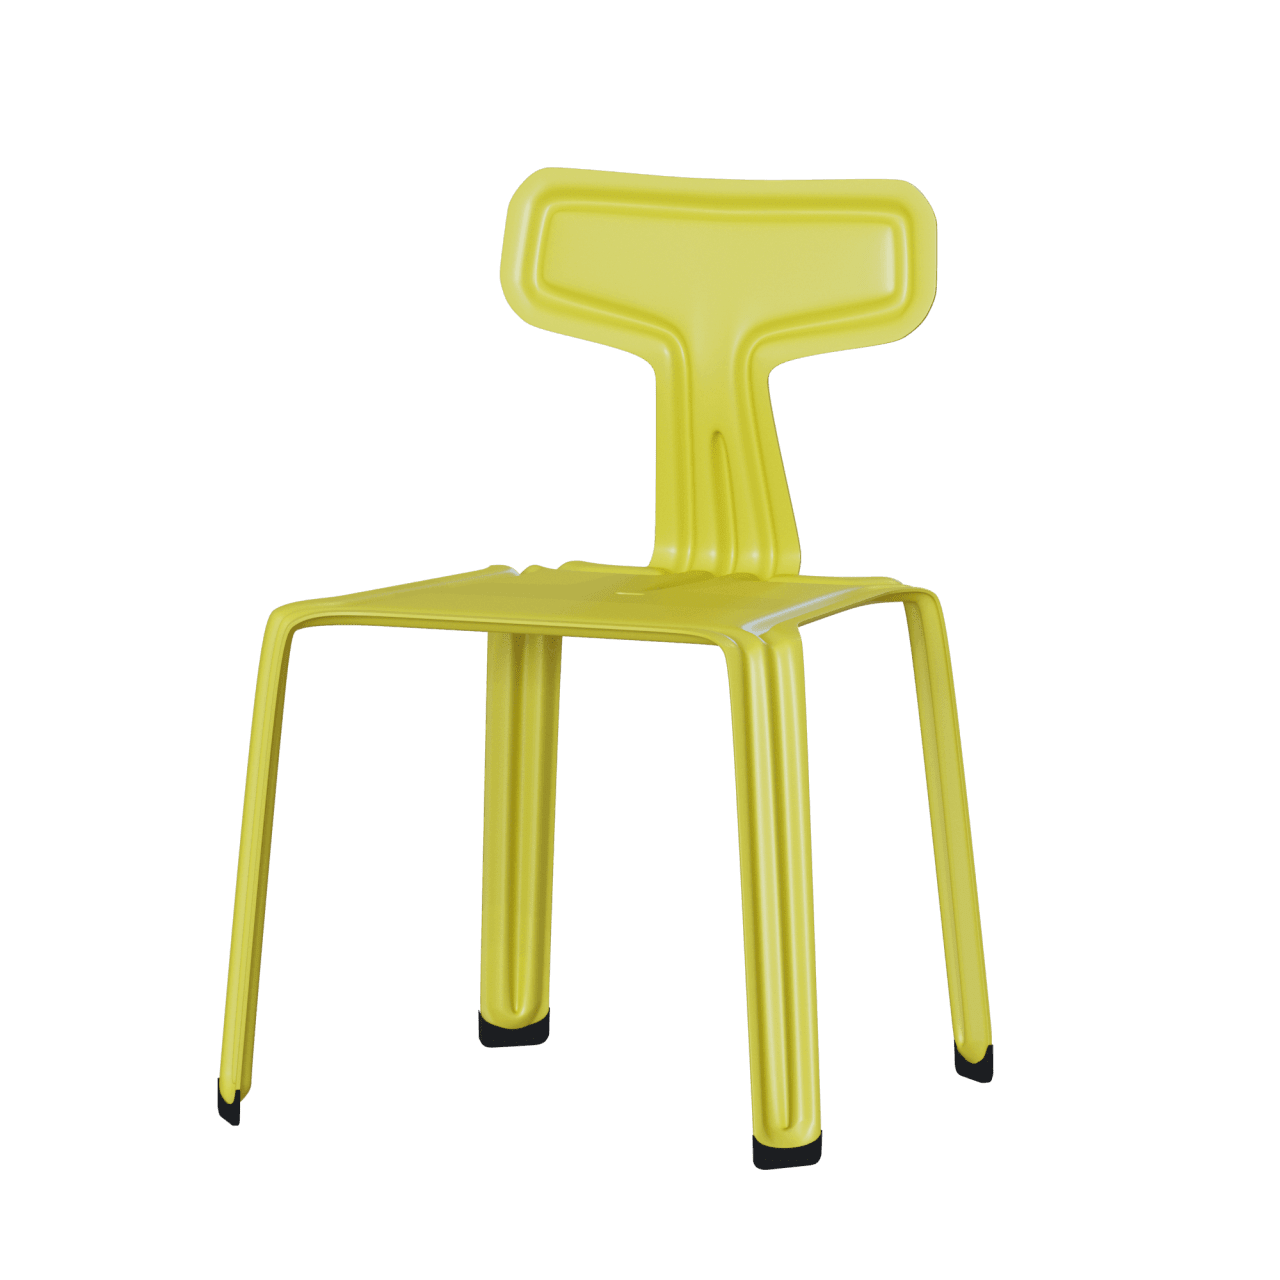 Pressed Chair